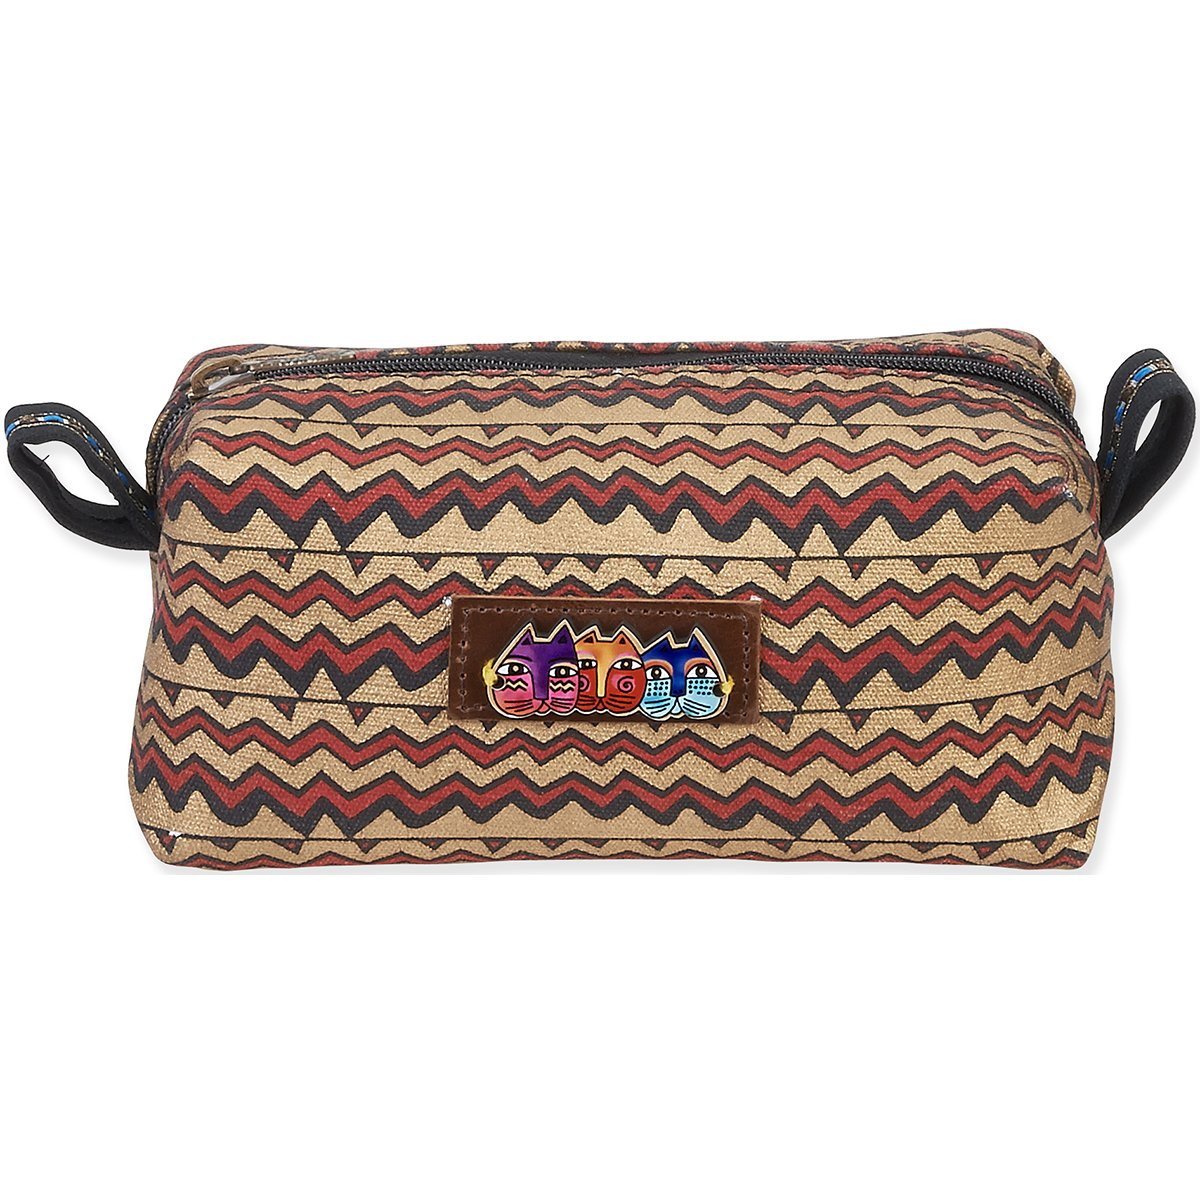 Laurel Burch Cosmetic Signature Collection/Zig Zags Pouch, 7.5-Inch x 4-Inch x 4-Inch free shipping